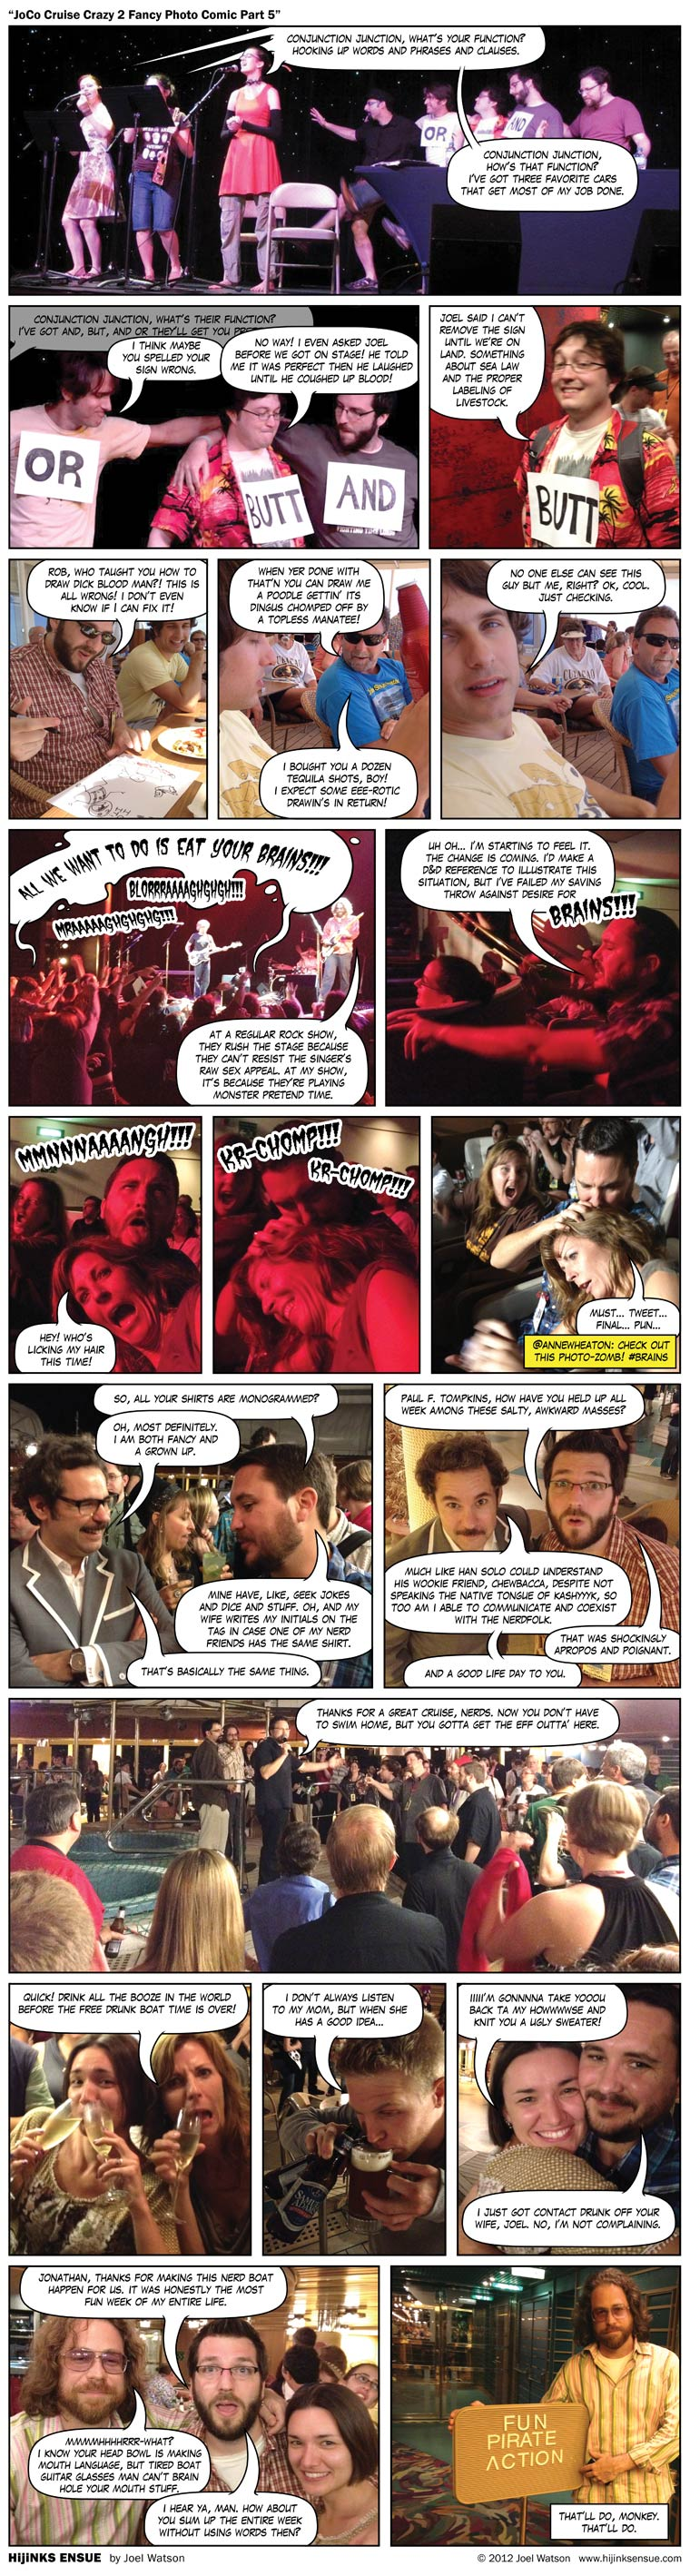 JoCo Cruise Crazy 2 Fancy Photo Comic Part 5